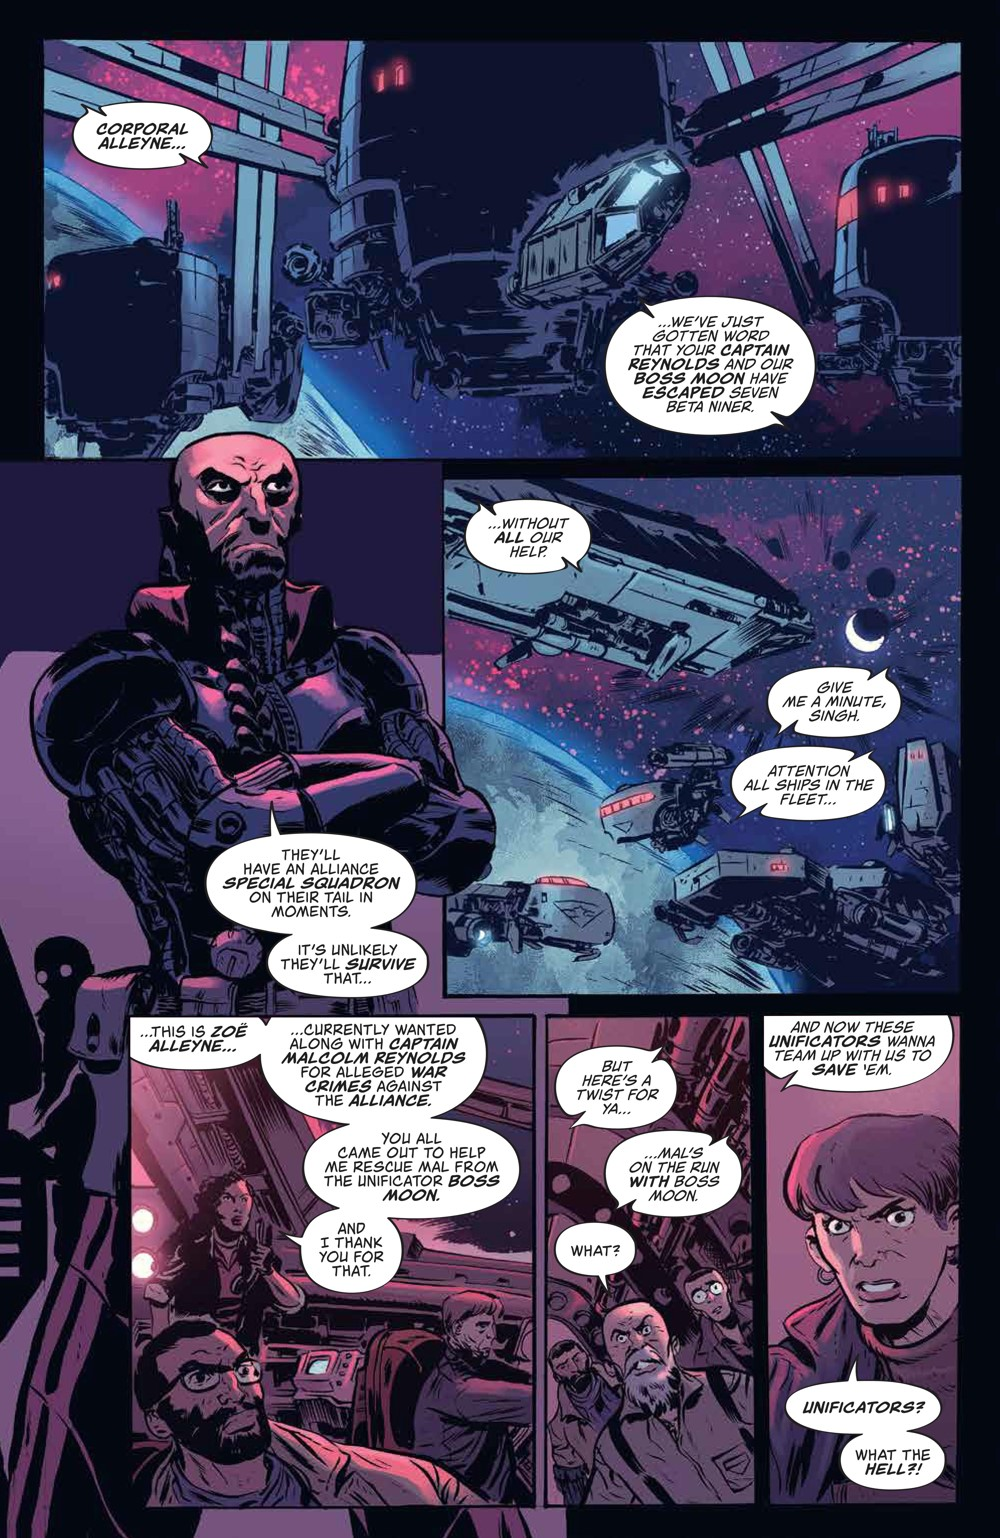 Firefly_v3_SC_PRESS_14 ComicList Previews: FIREFLY THE UNIFICATION WAR VOLUME 3 TP